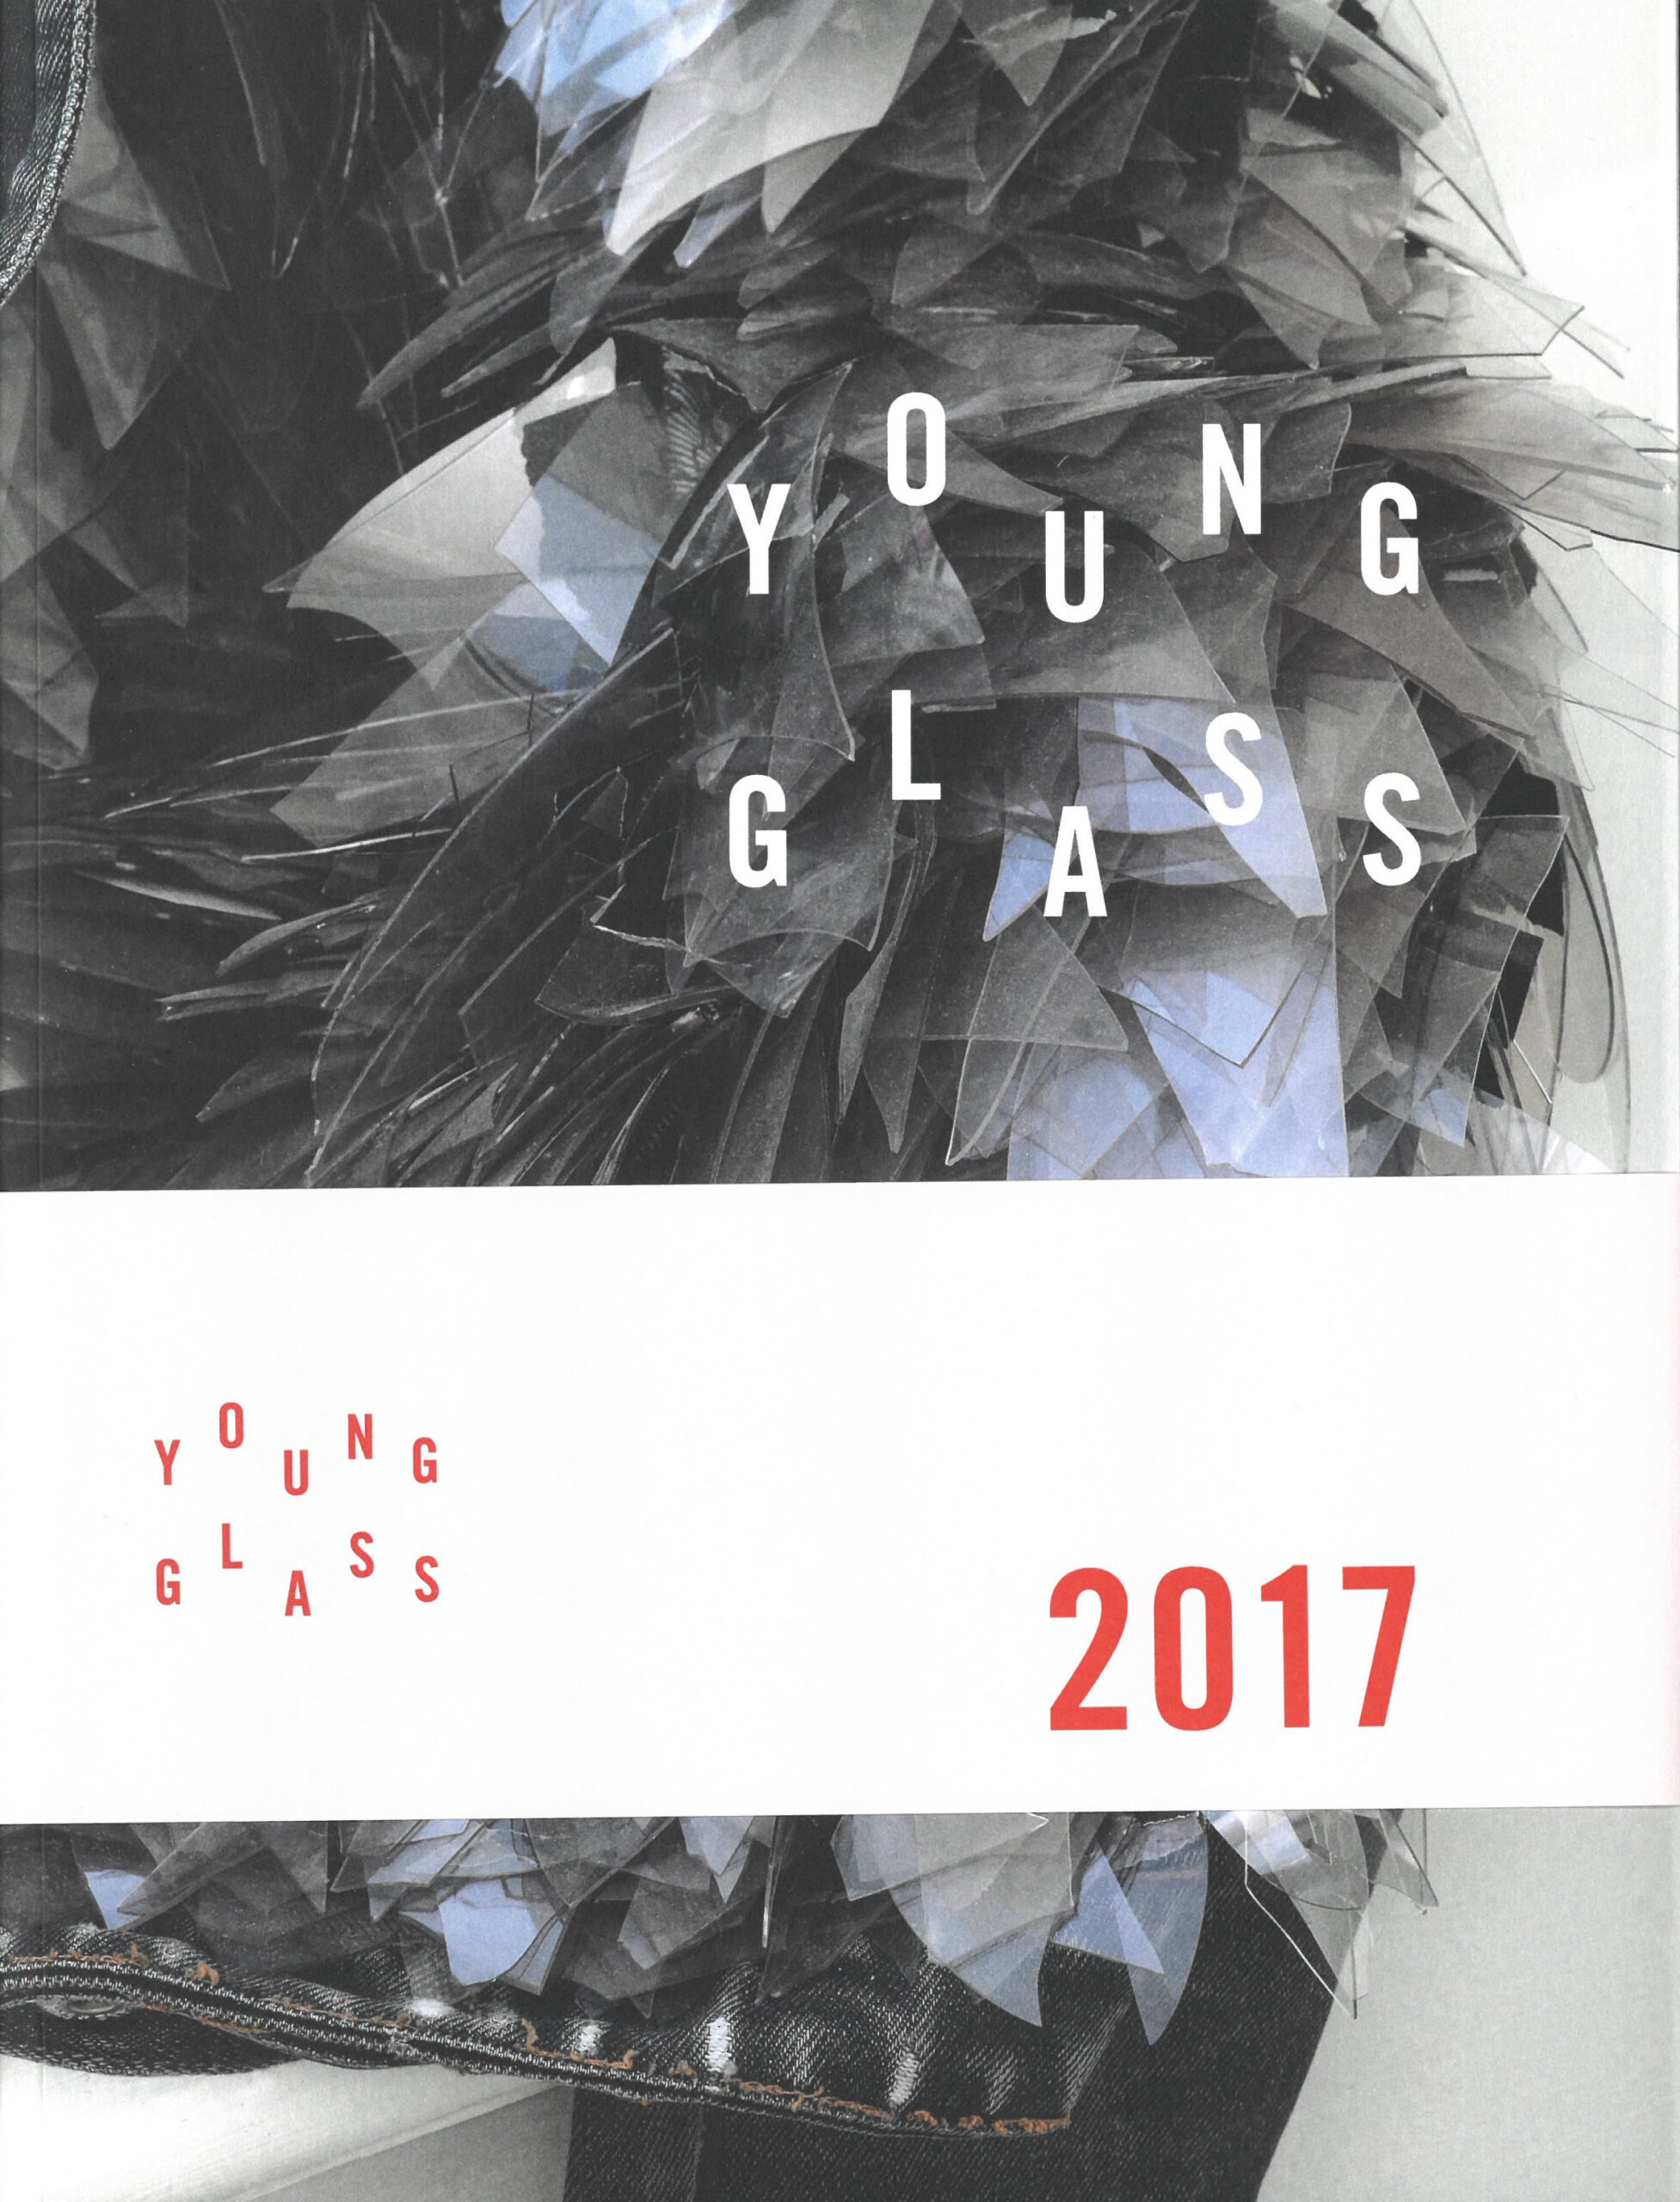 YOUNG GLASS 2017